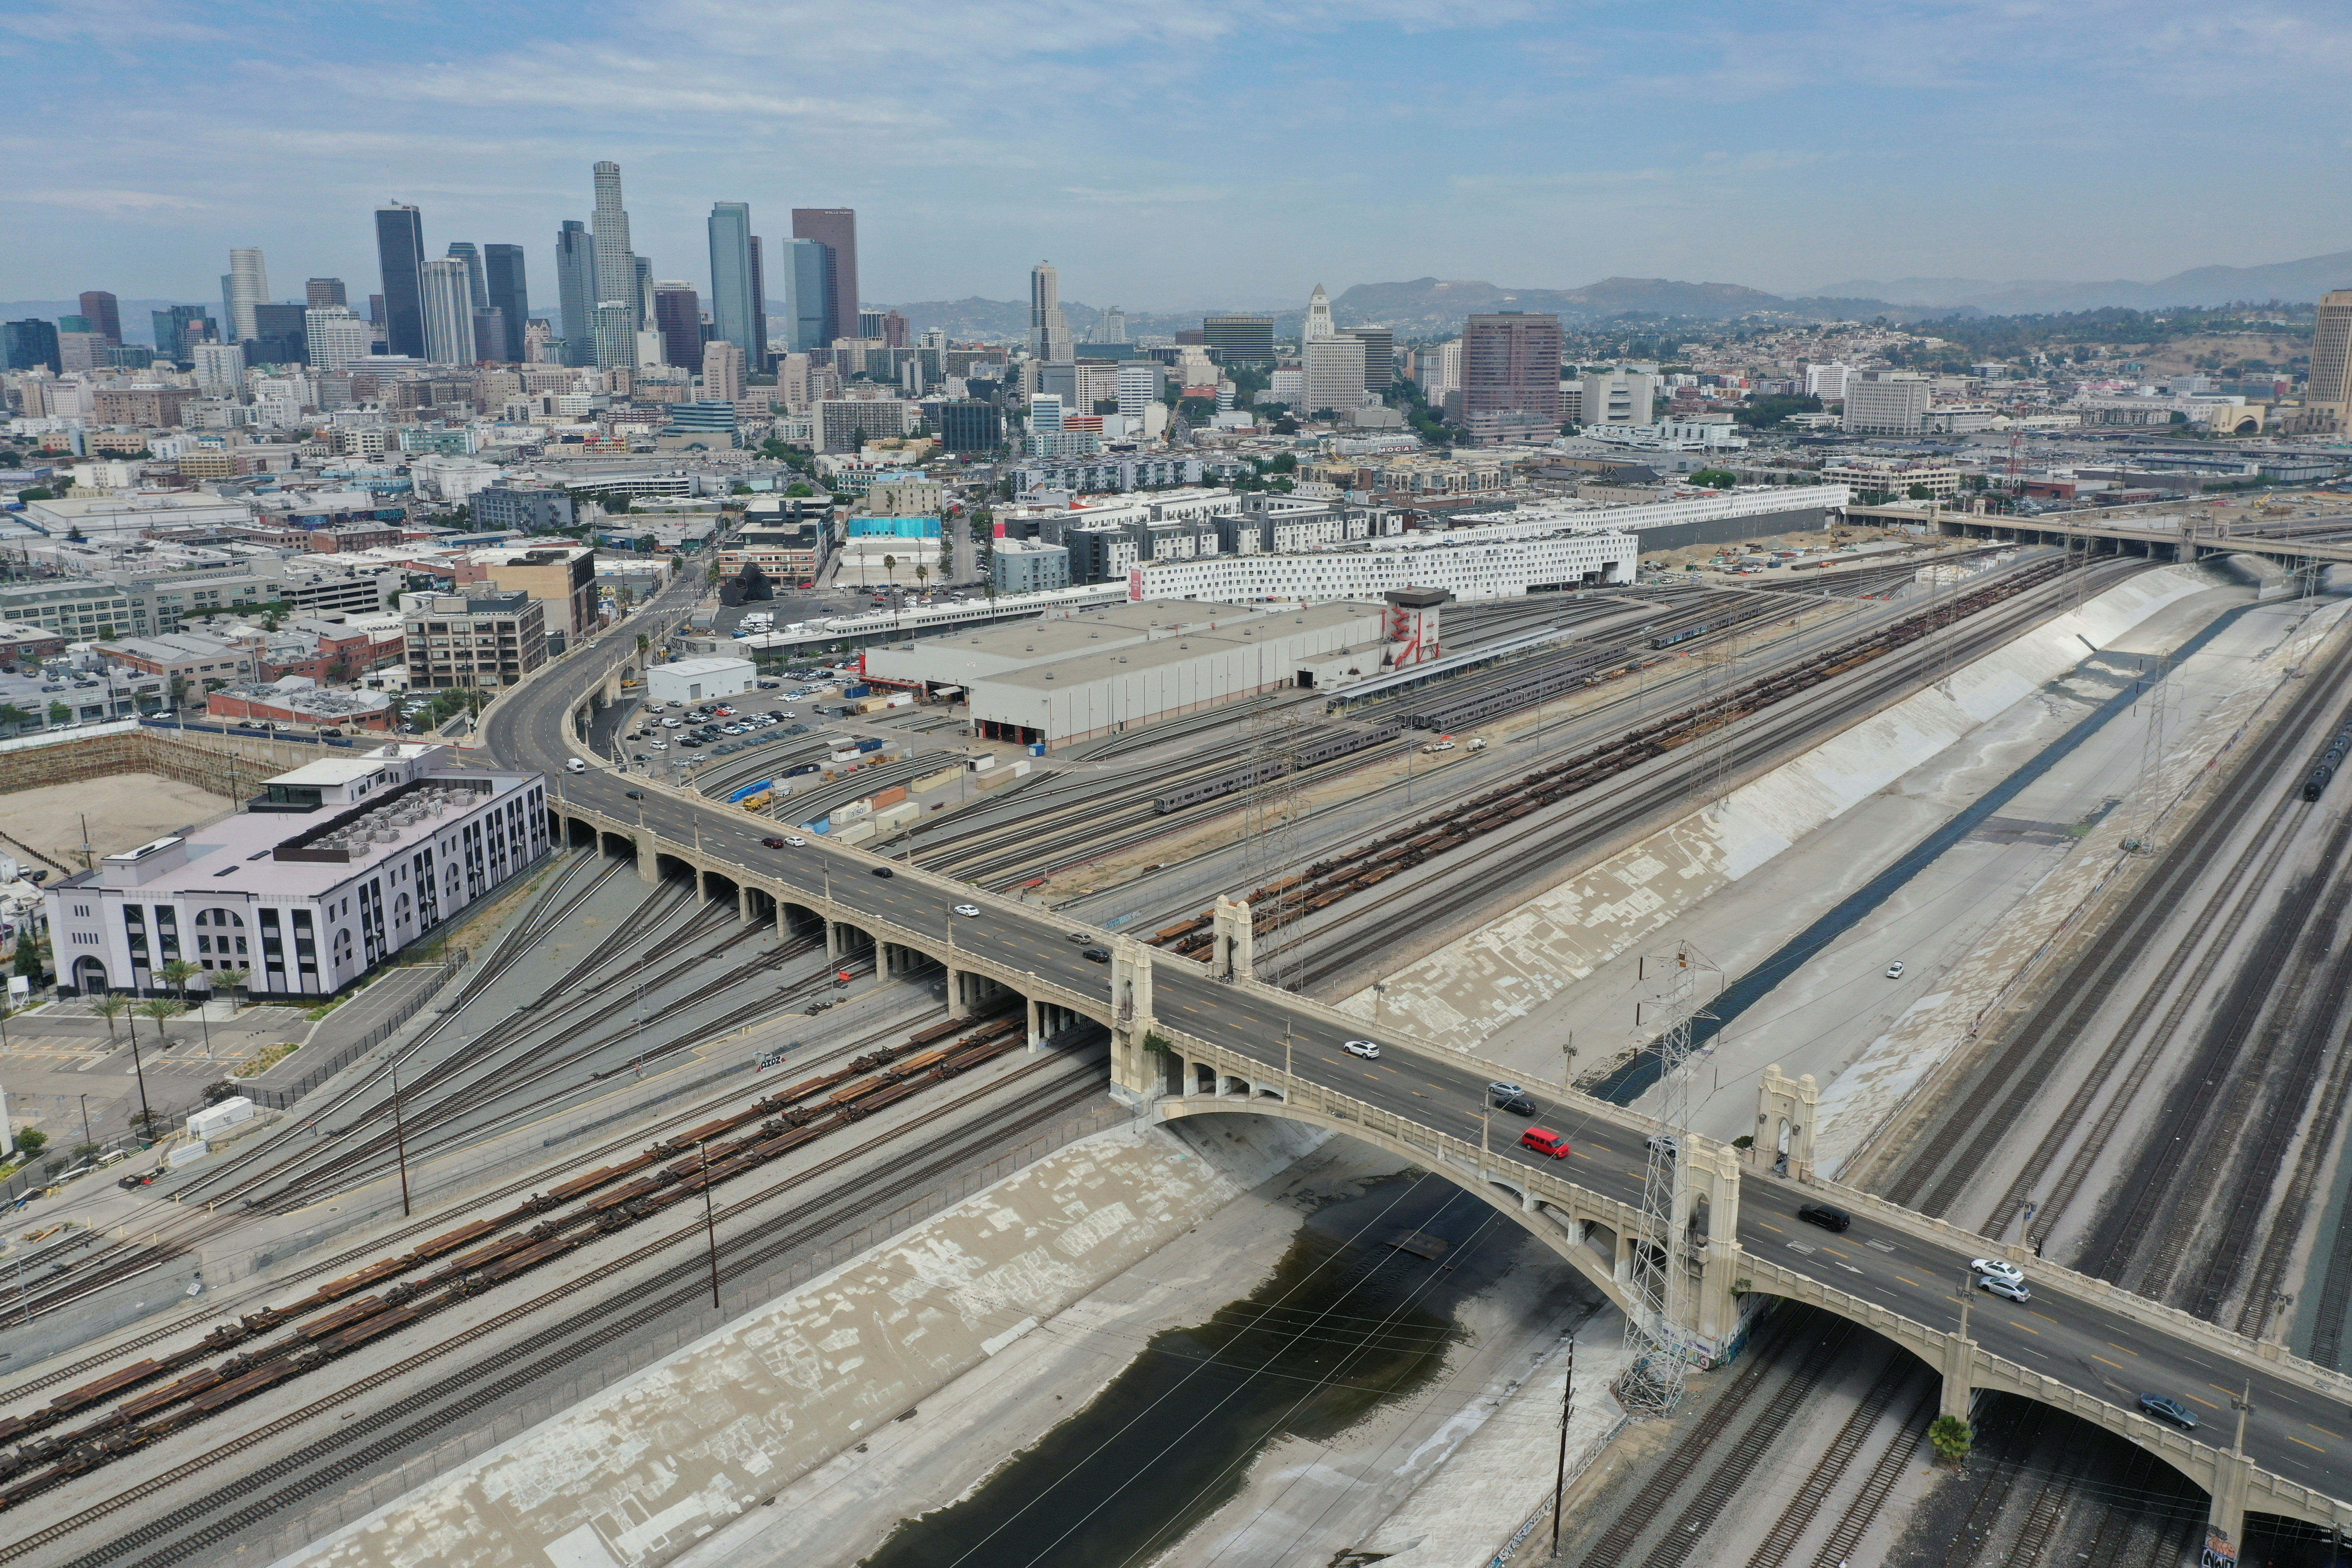 An aerial view of the Metro Division 20 Rail Yard and the Fourth Street Viaduct over the Los Angeles River in Los Angeles, California, U.S., August 11, 2021. Picture taken with a drone. REUTERS/Bing Guan - RC2Y2P9D5WIL